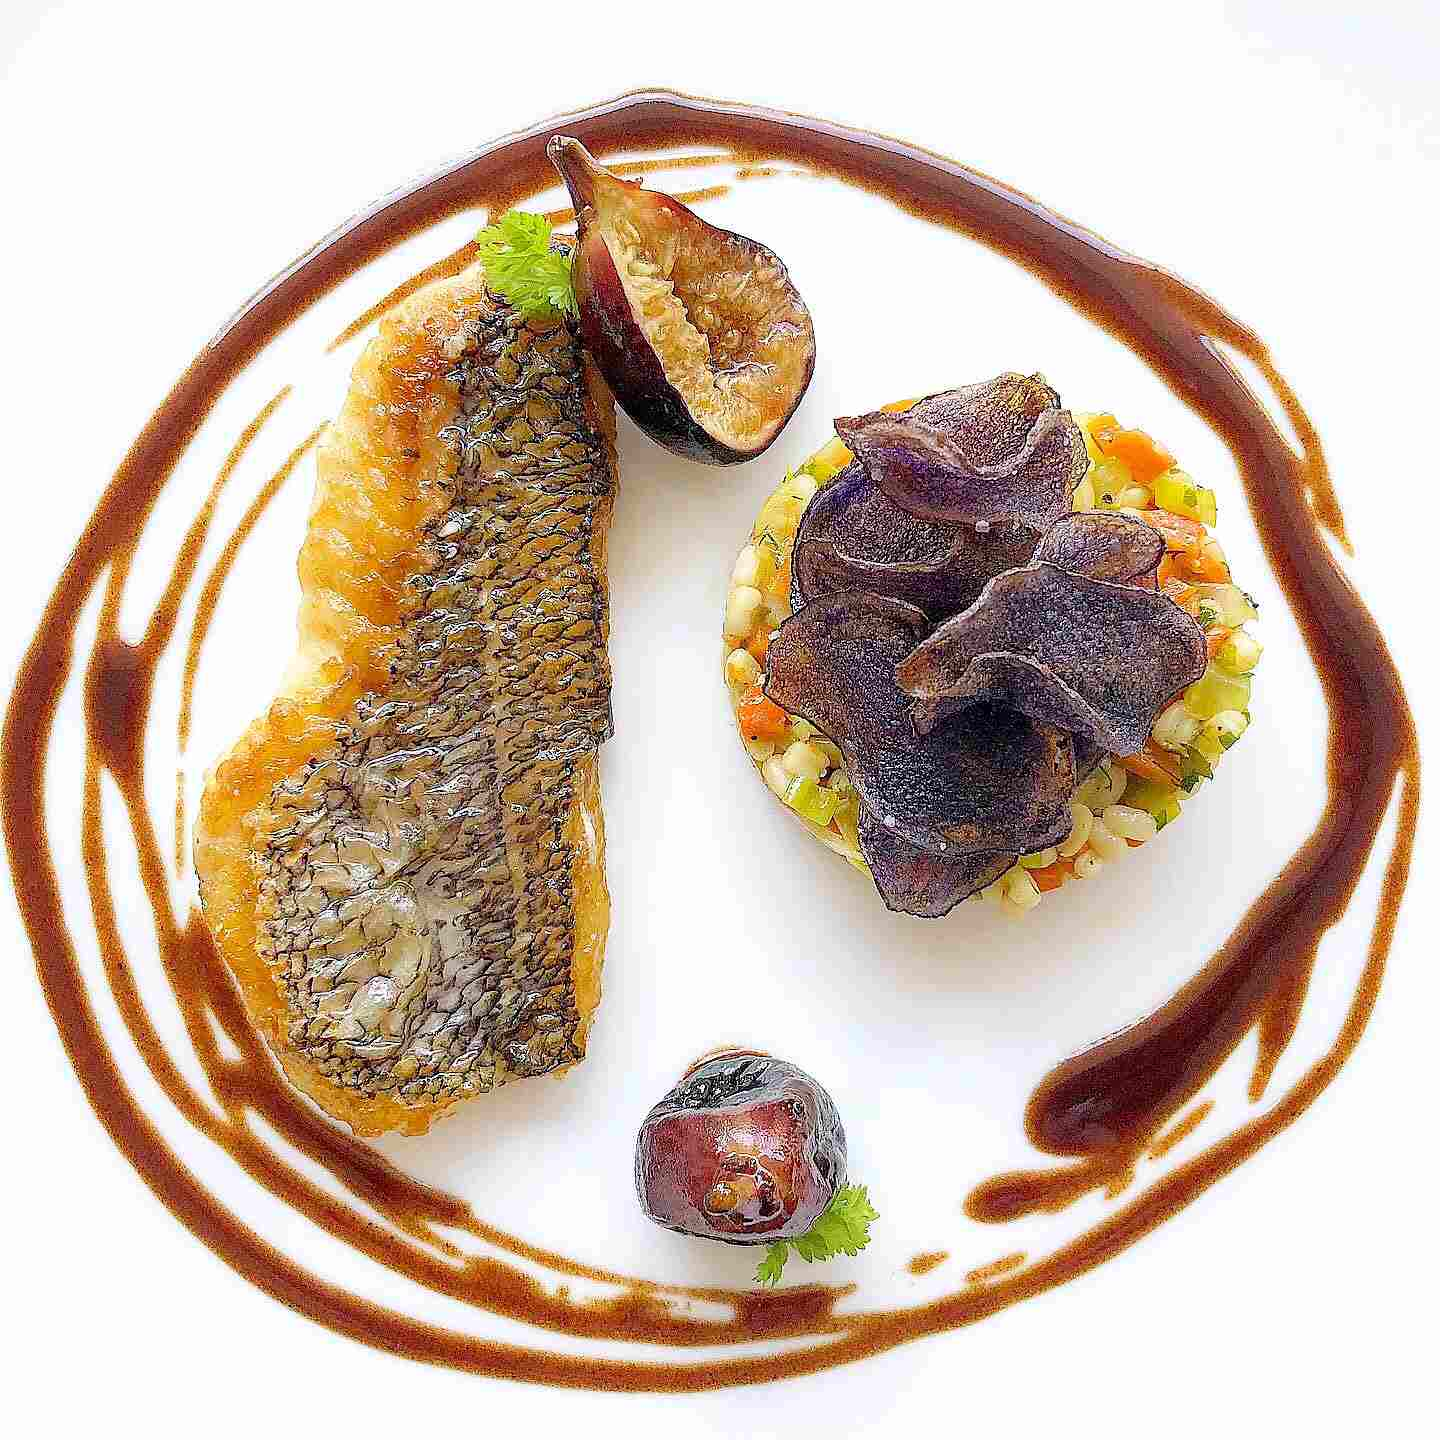 Black Bass recipe with fig and red wine butter